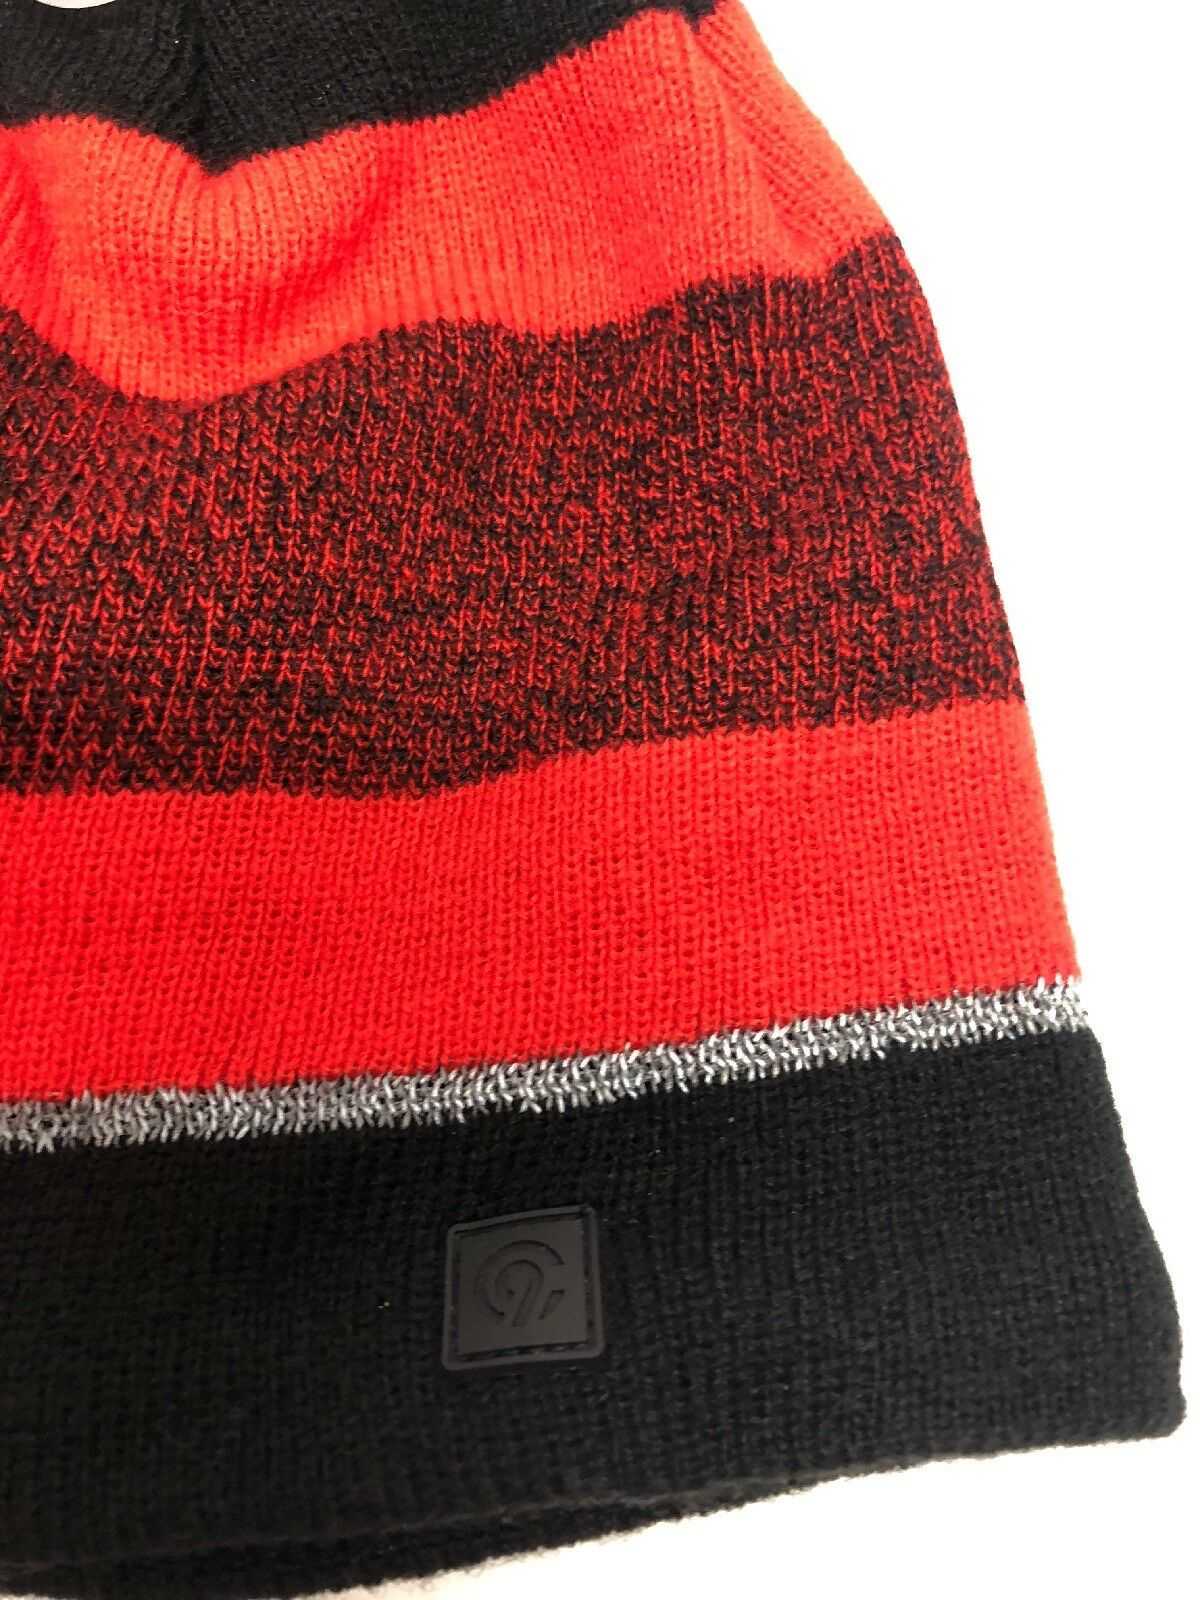 ee58bf71663cd NWT Champion C9 Red Striped Pom Hat Mens Reflective One Size